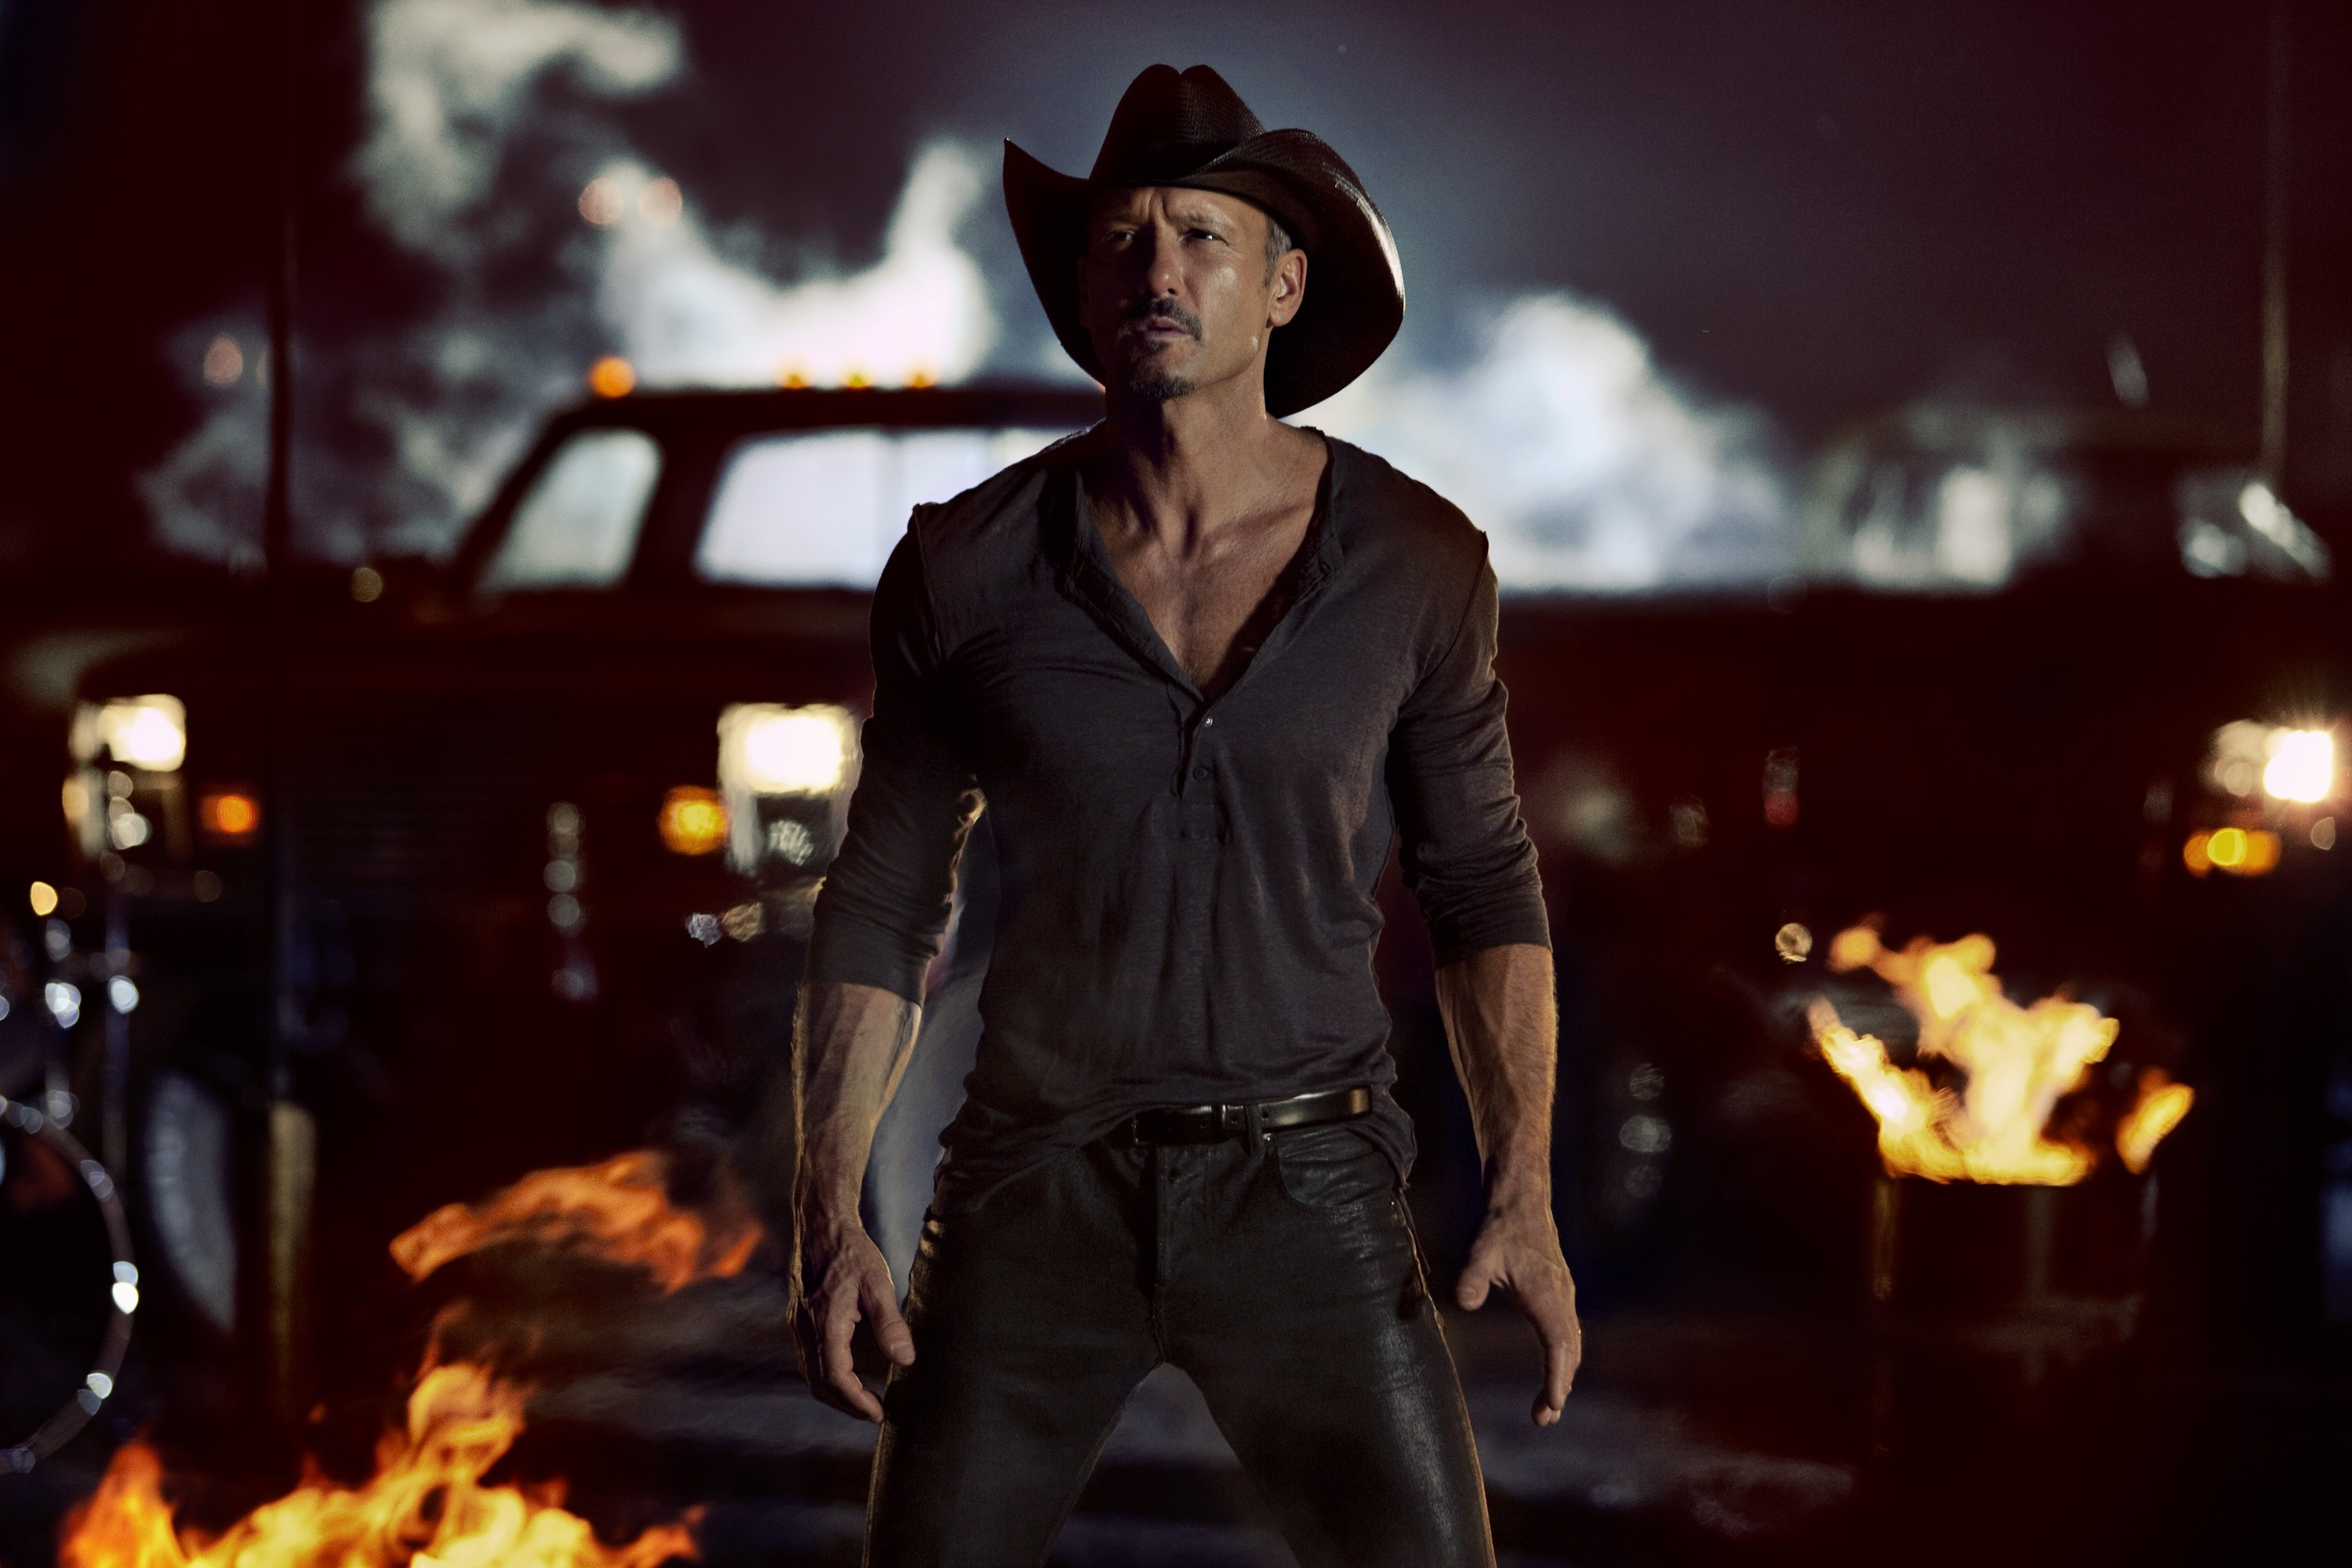 Country Music Stars Wallpaper: Wallpaper Tim McGraw, Top Music Artist And Bands, Singer